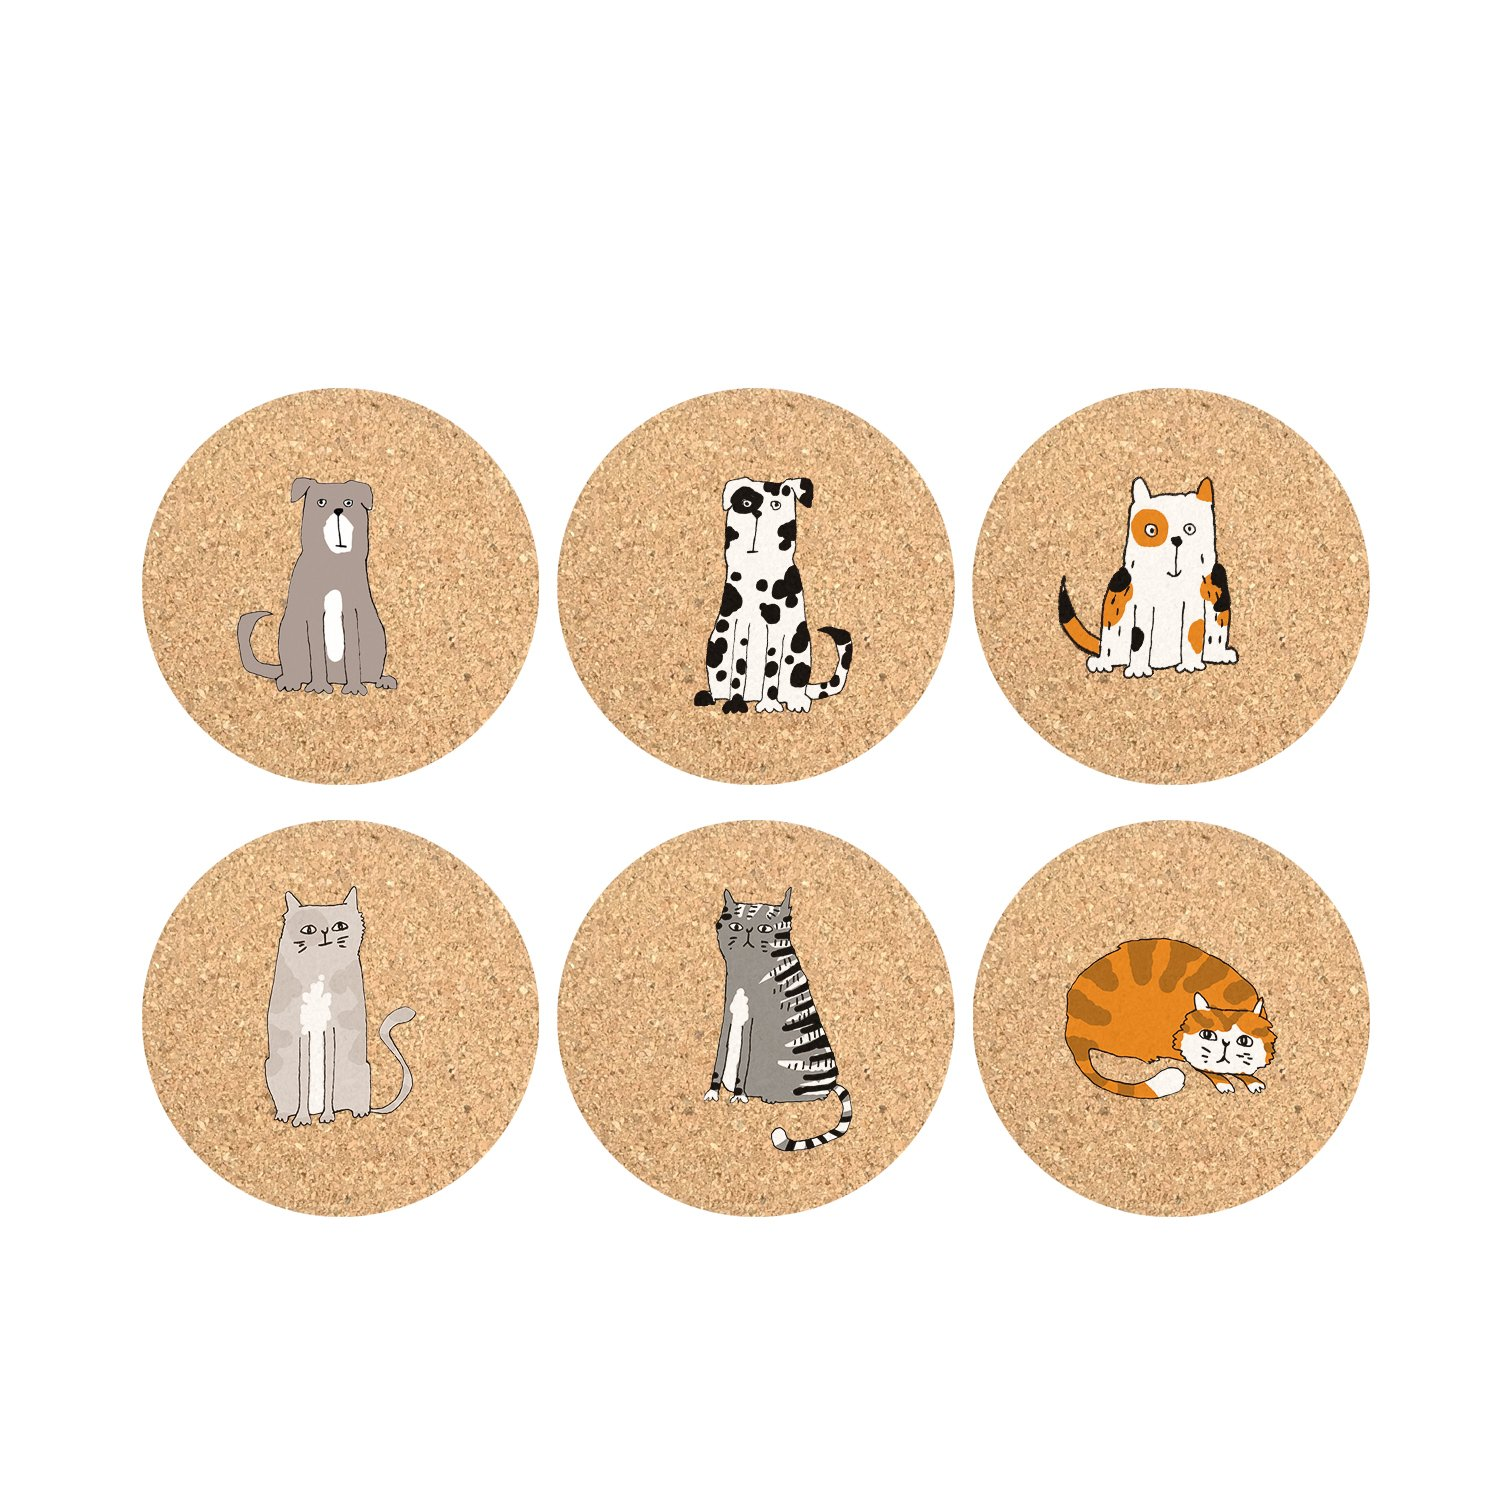 Mee'life Cork Coasters Set of 6 Strong Water Absorption,Protect Furniture,Ecofriendly Not Stick to Cups and Glasses,Bar Size Large Round 3.94 Inch, with Funny Animal Cartoons Design Fits All Occasions